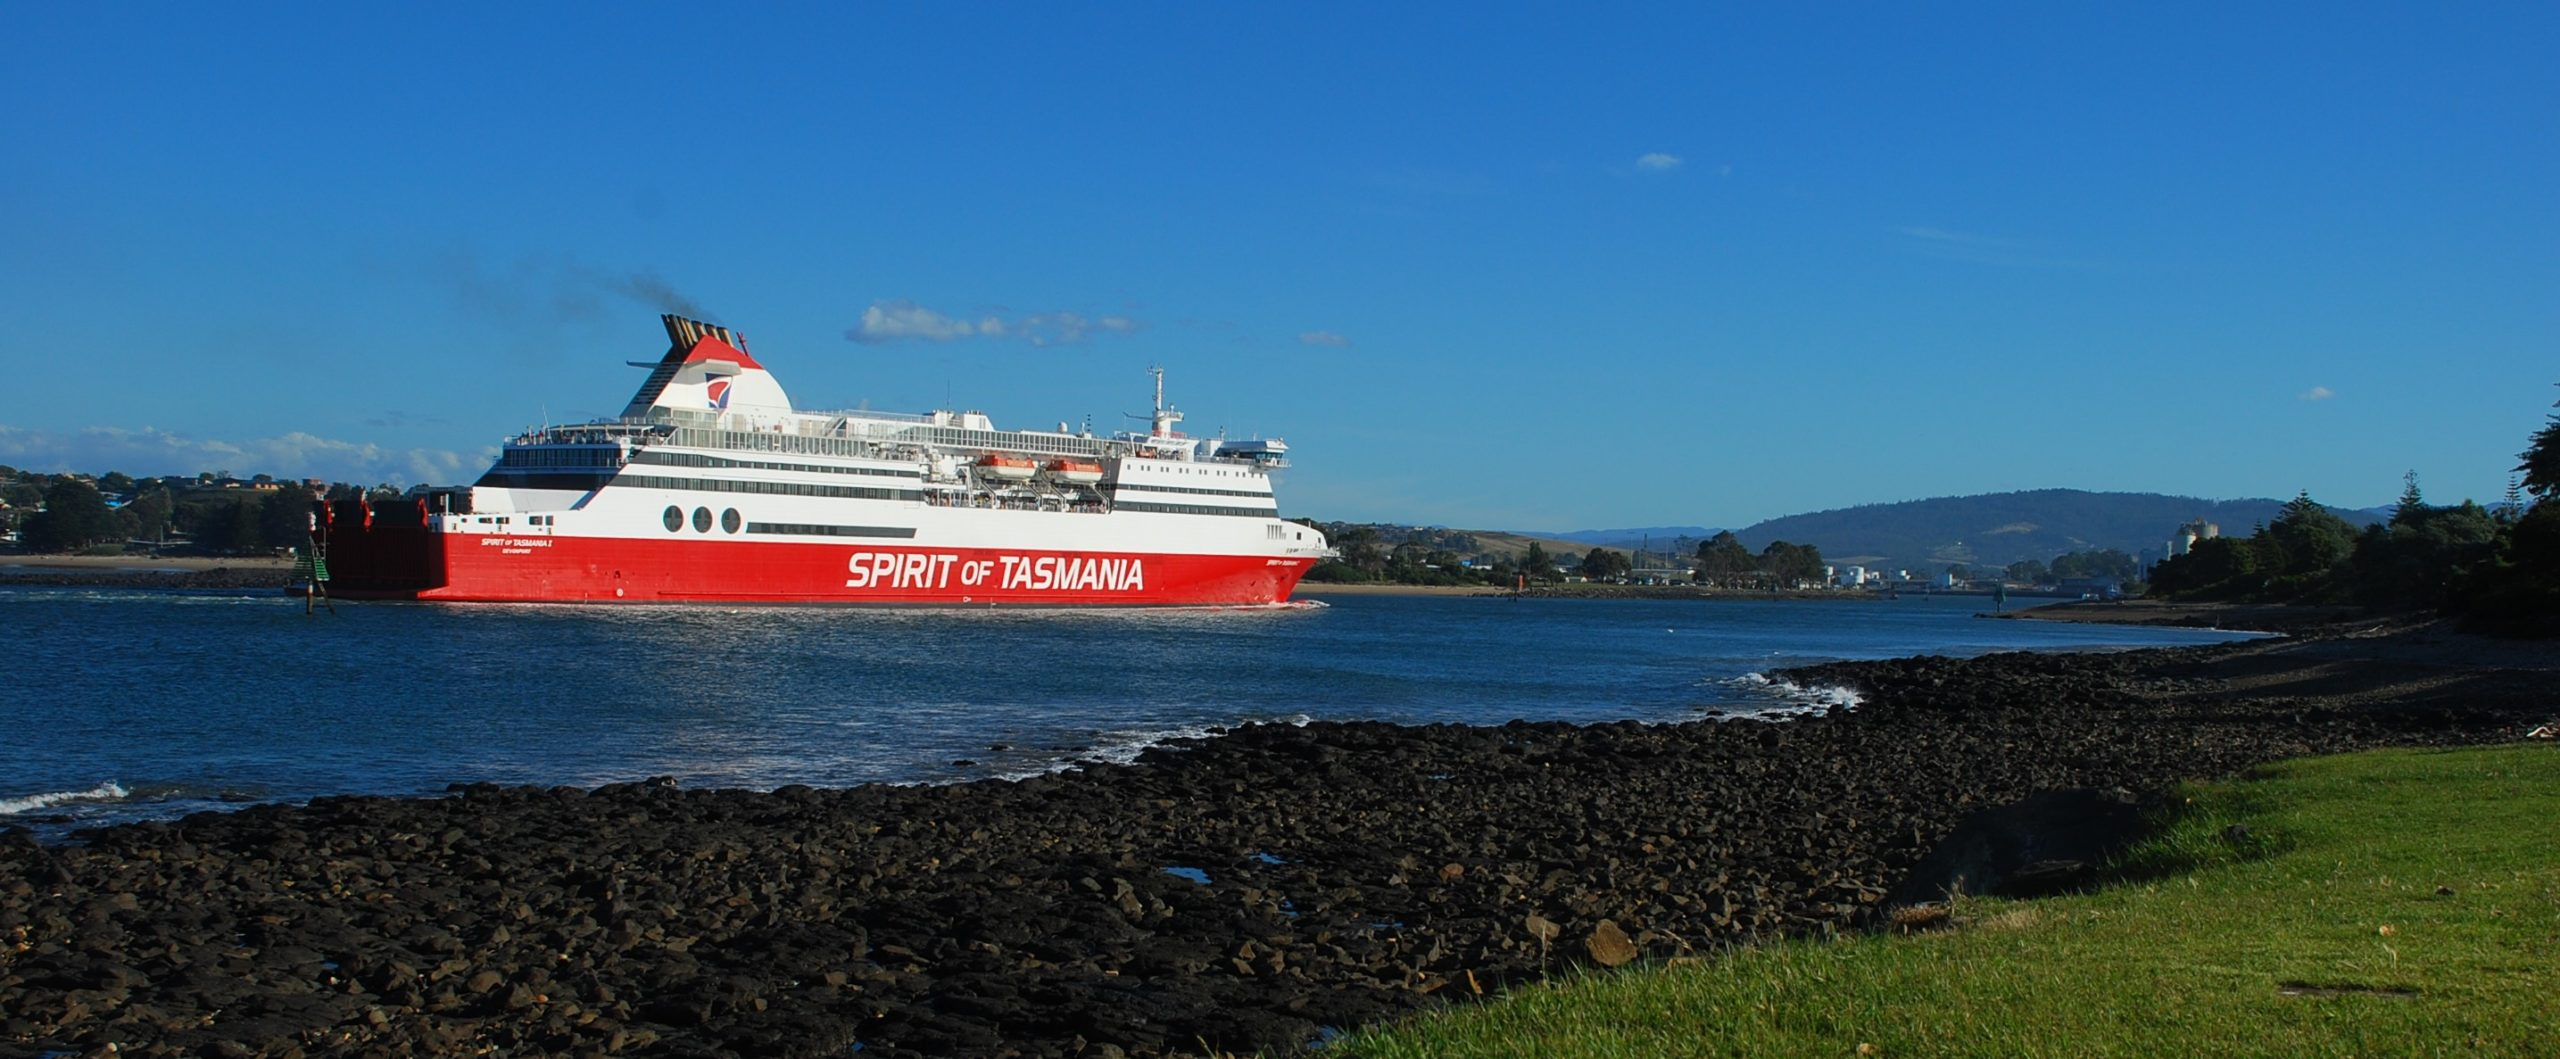 Abel Tasman Caravan Park in Devonport - Watch the Spirit of Tasmania Sail Past